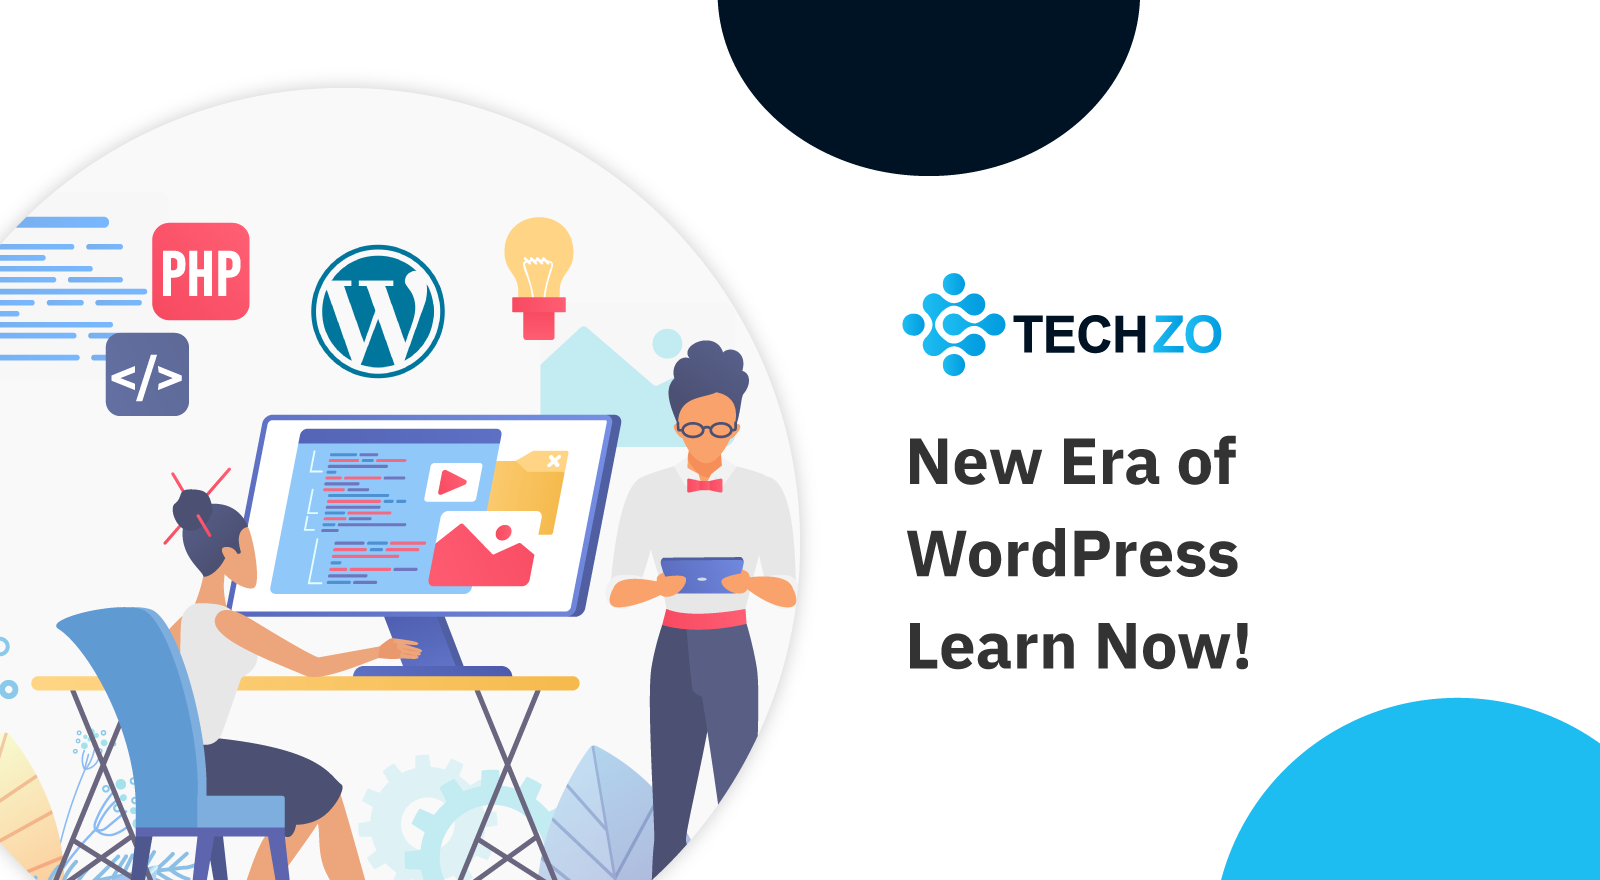 New Era of WordPress Learn Now